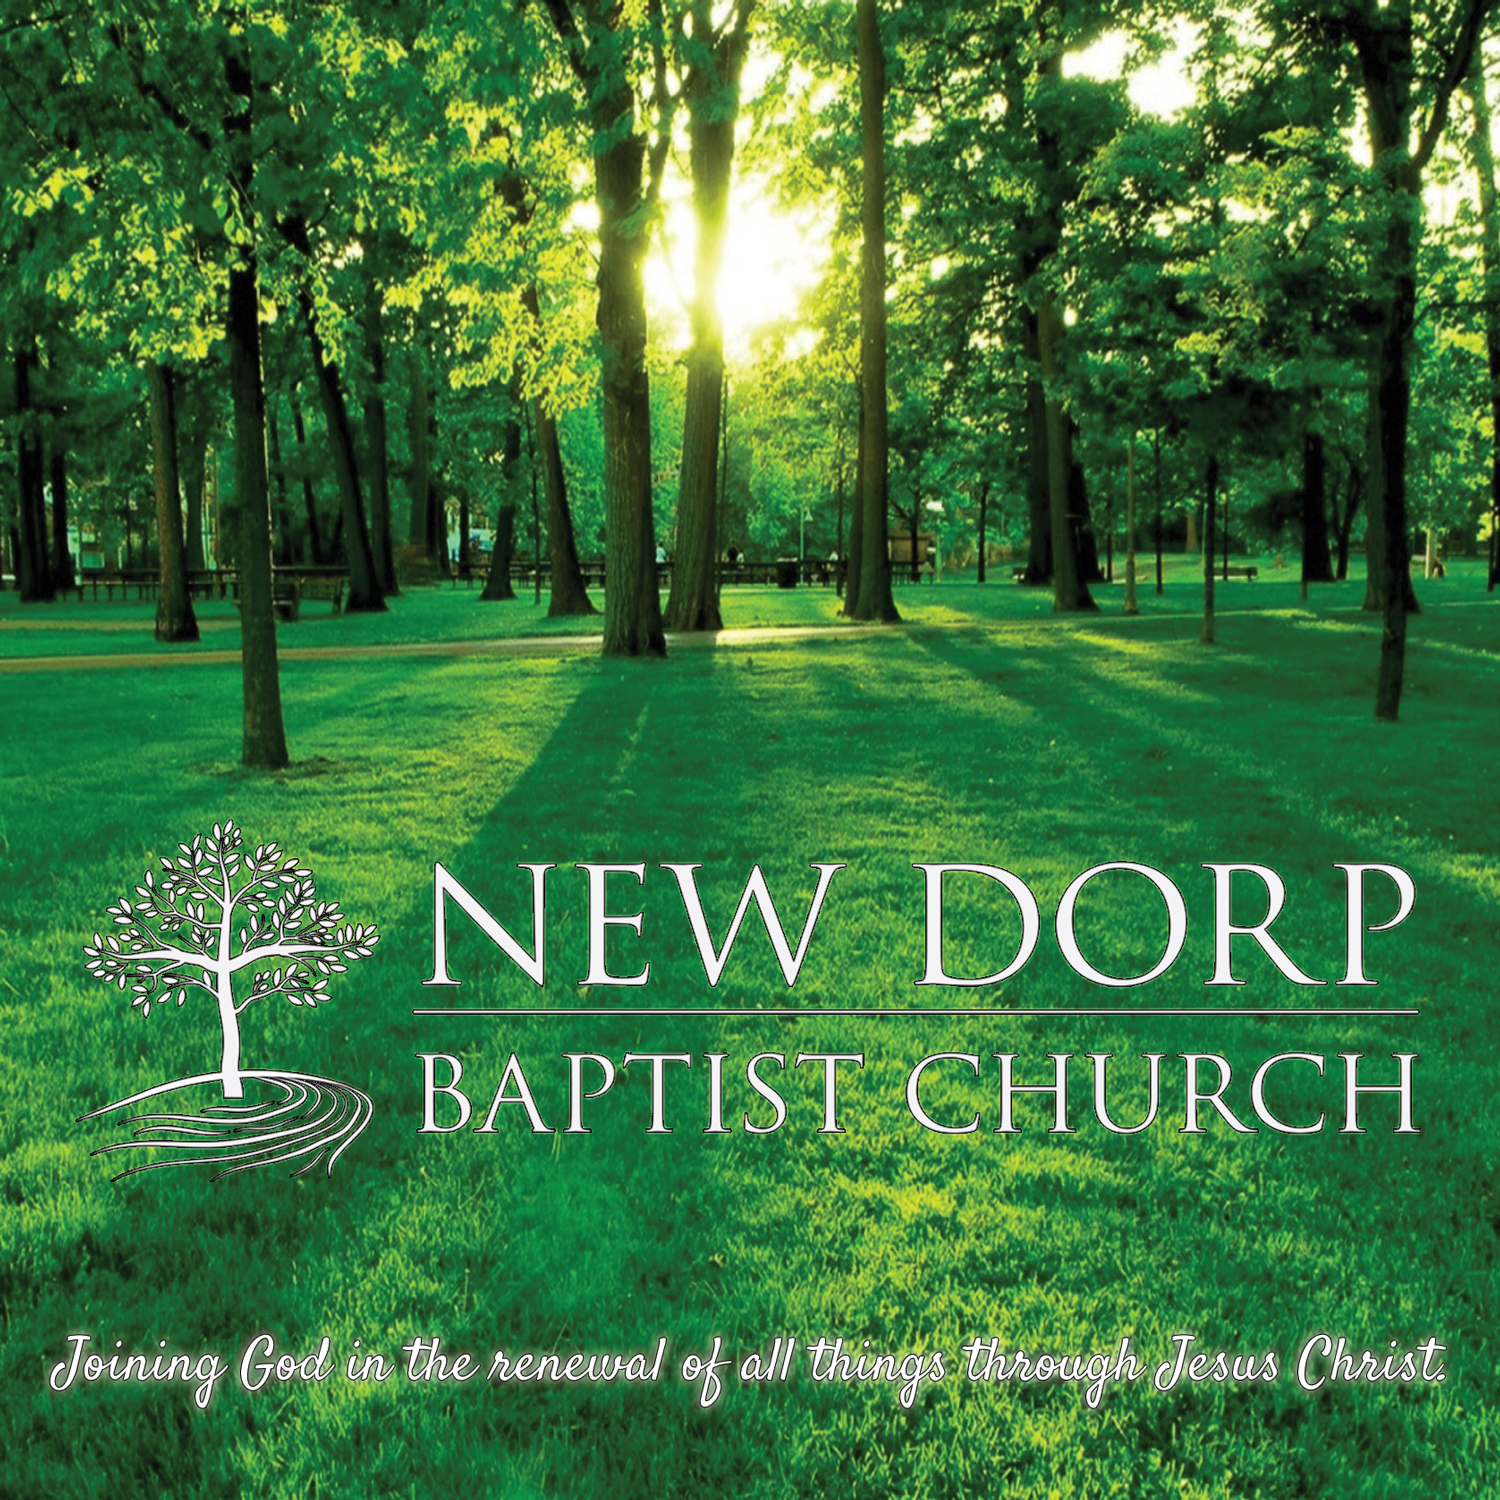 New Dorp Baptist Church